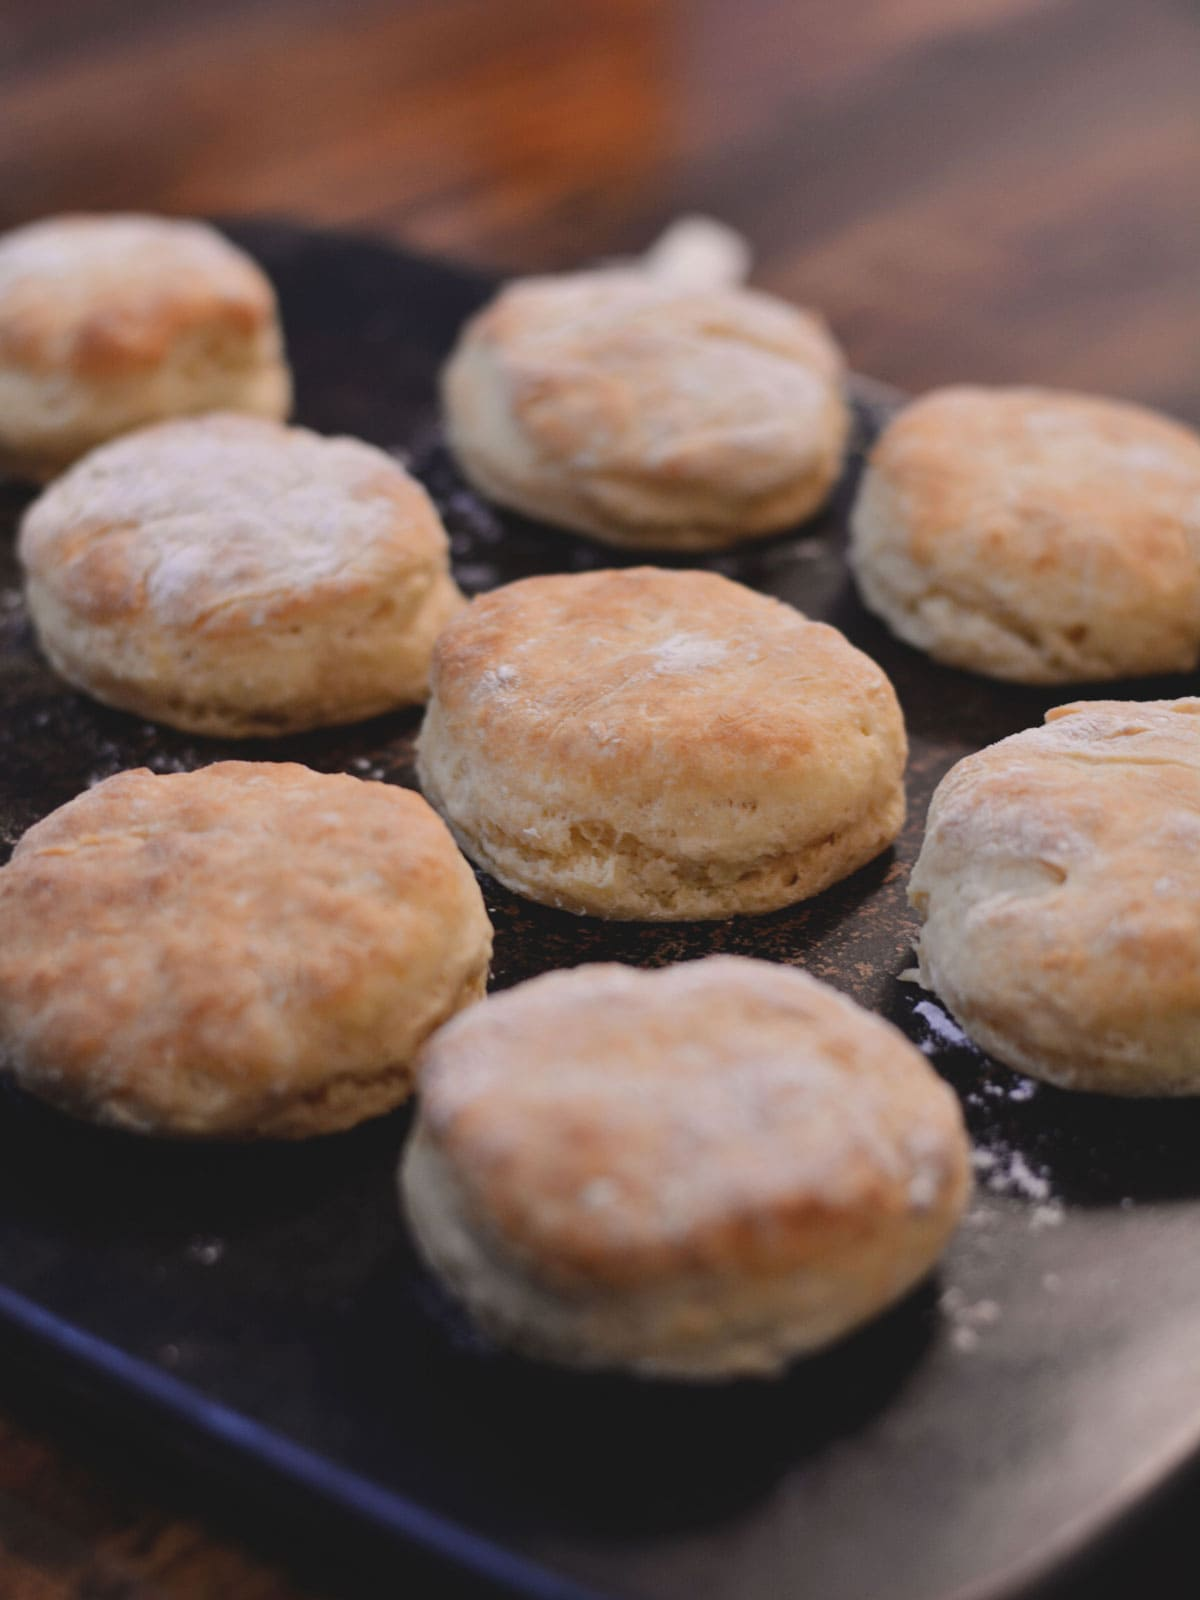 Classic Baking Soda Biscuits, made from scratch - with how-to cooking video.